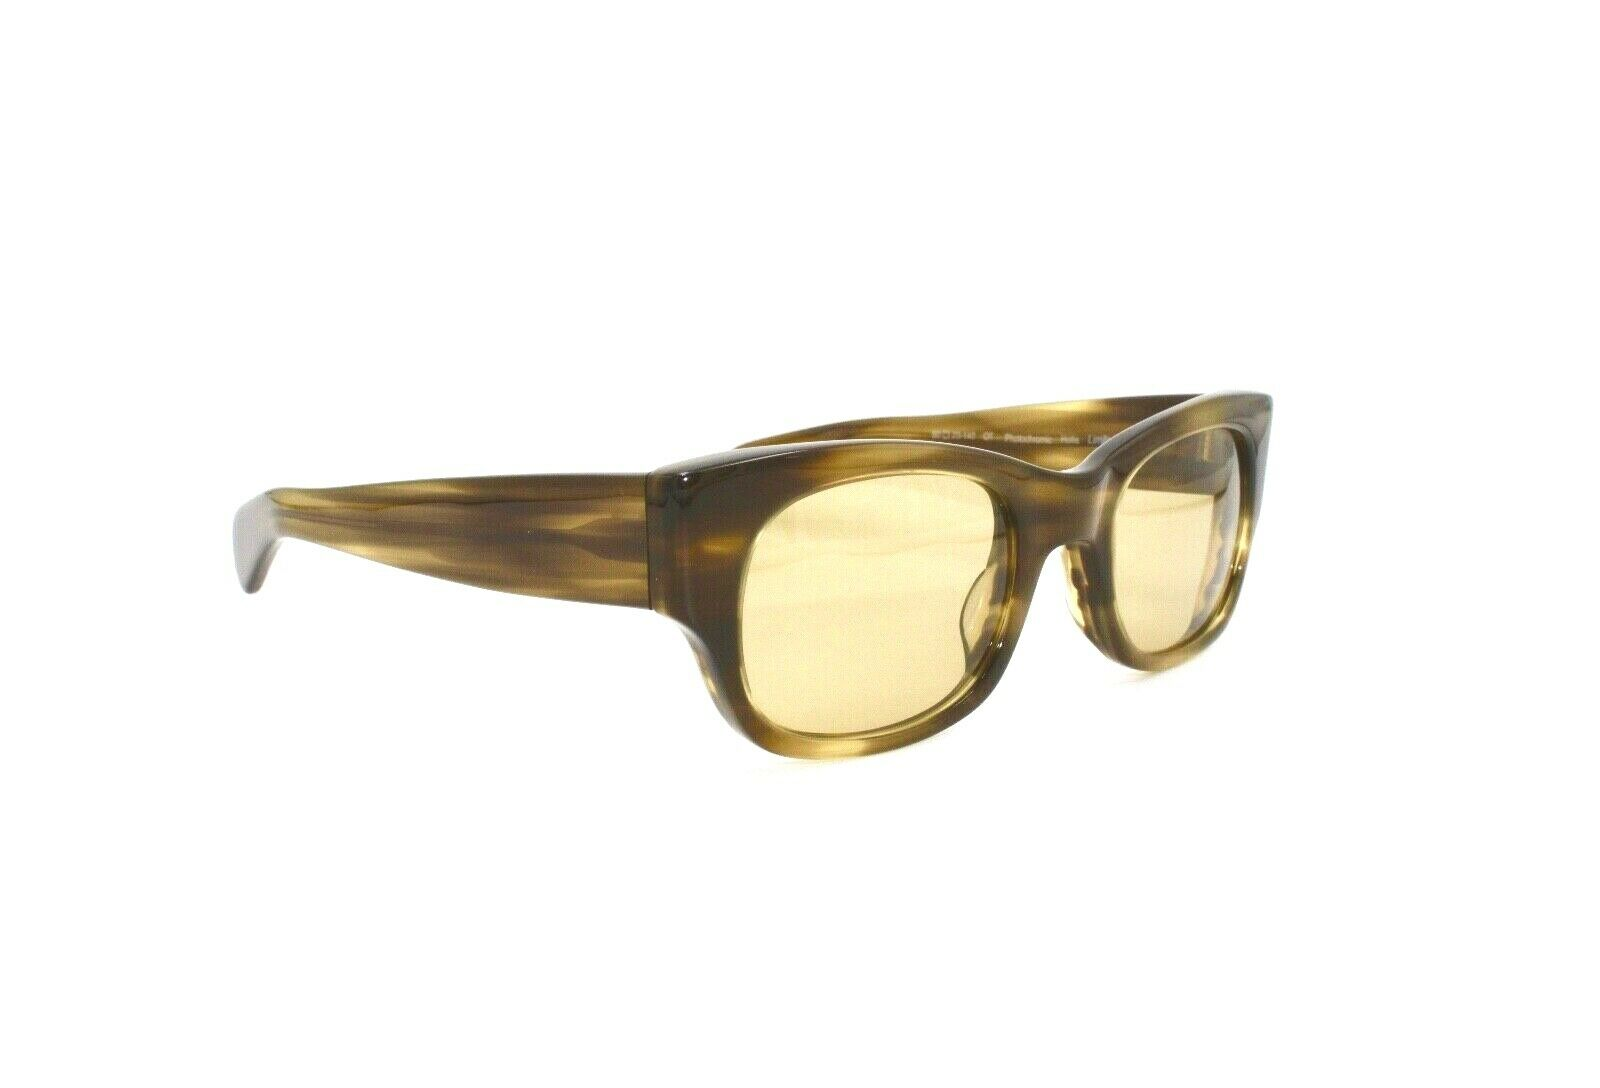 Oliver Peoples Twenty Years Sunglasses 50 23-140 OT Photochromic Hollis Limited - Mydesigneroptic